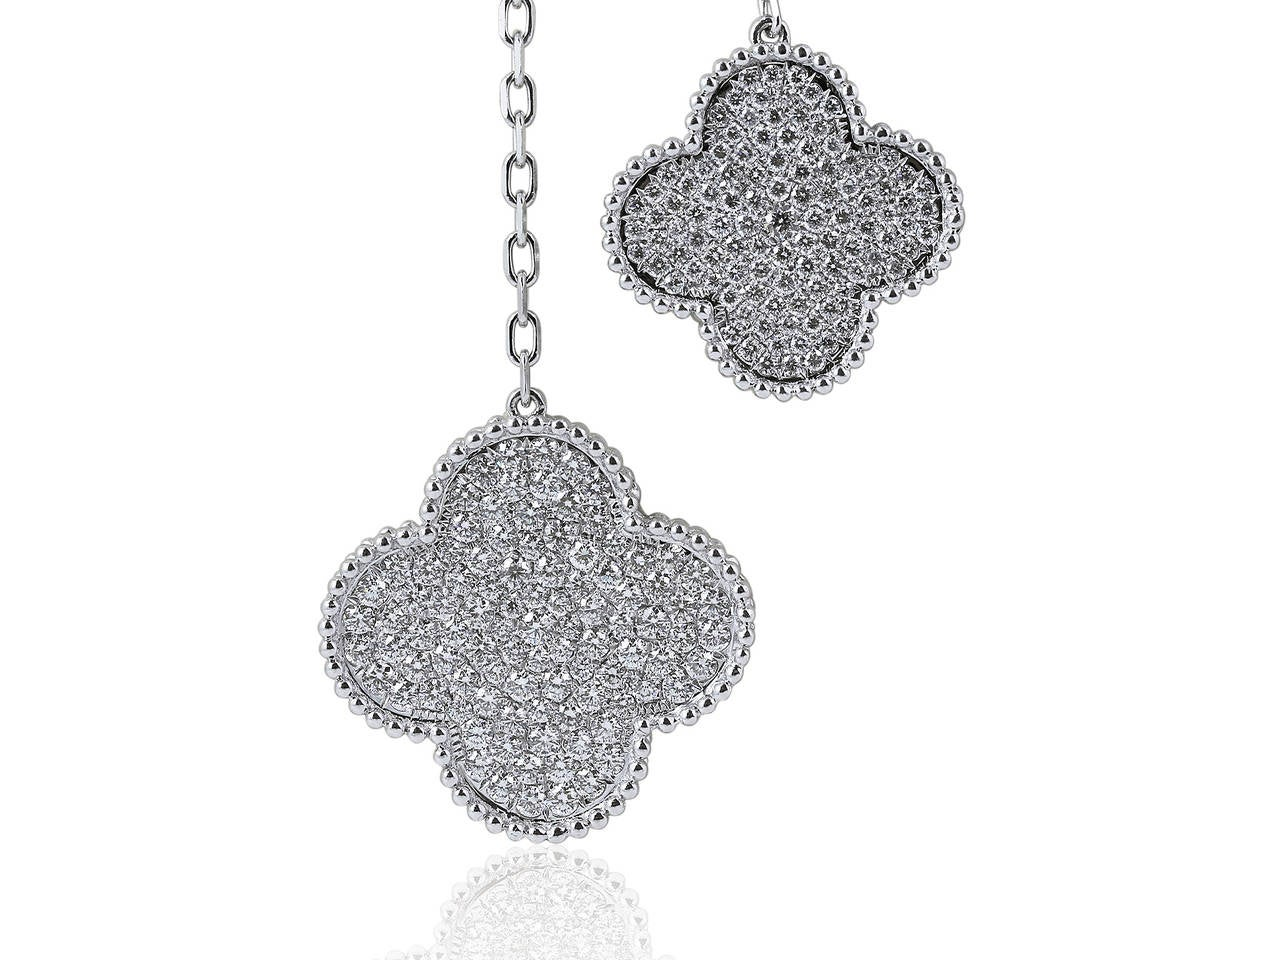 18 karat white gold Clover motif necklace consisting of 6.64 carats total weight of round brilliant cut diamonds.